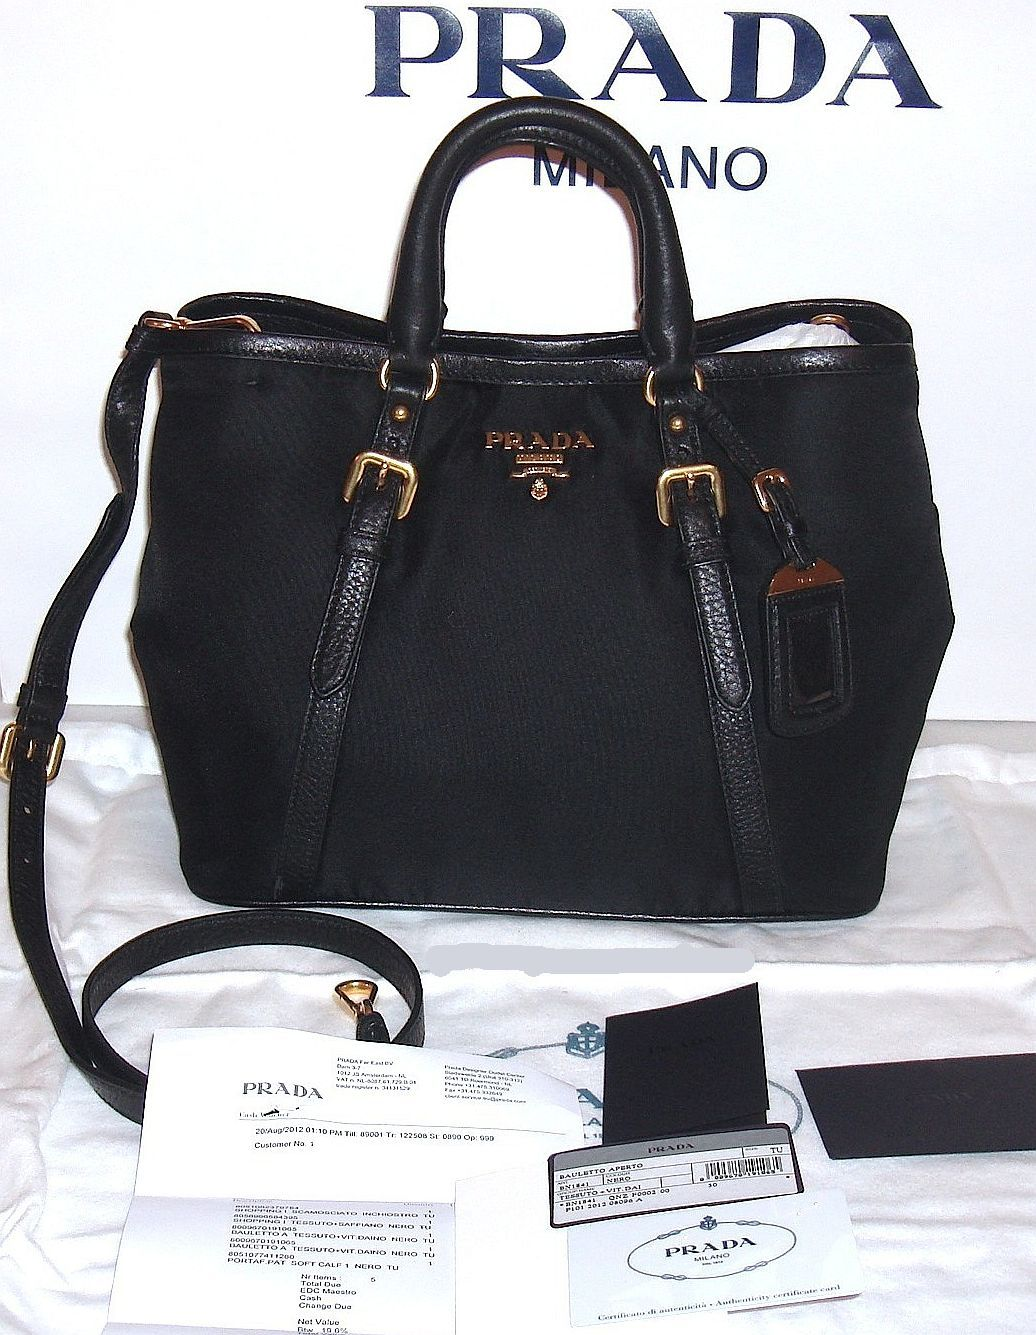 727aa34a44d9 Prada Handbag (Bauletto Aperto Tote Bag with Strap